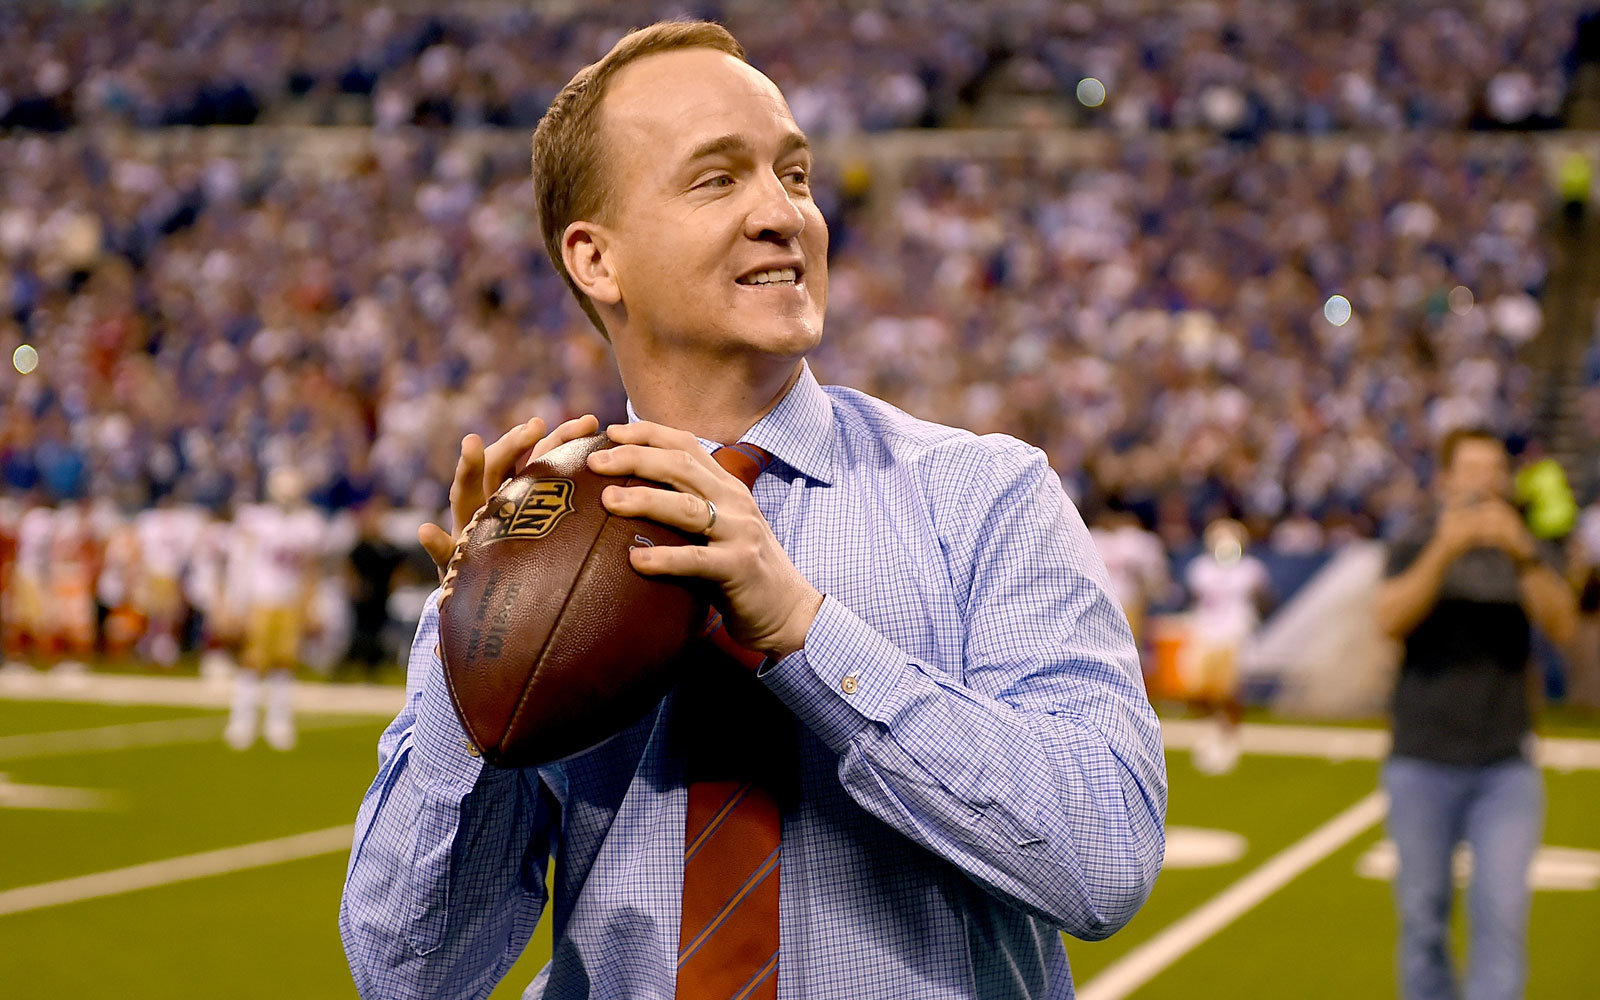 Watch Peyton Manning Surprise Holiday Travelers With A Special Airport Visit